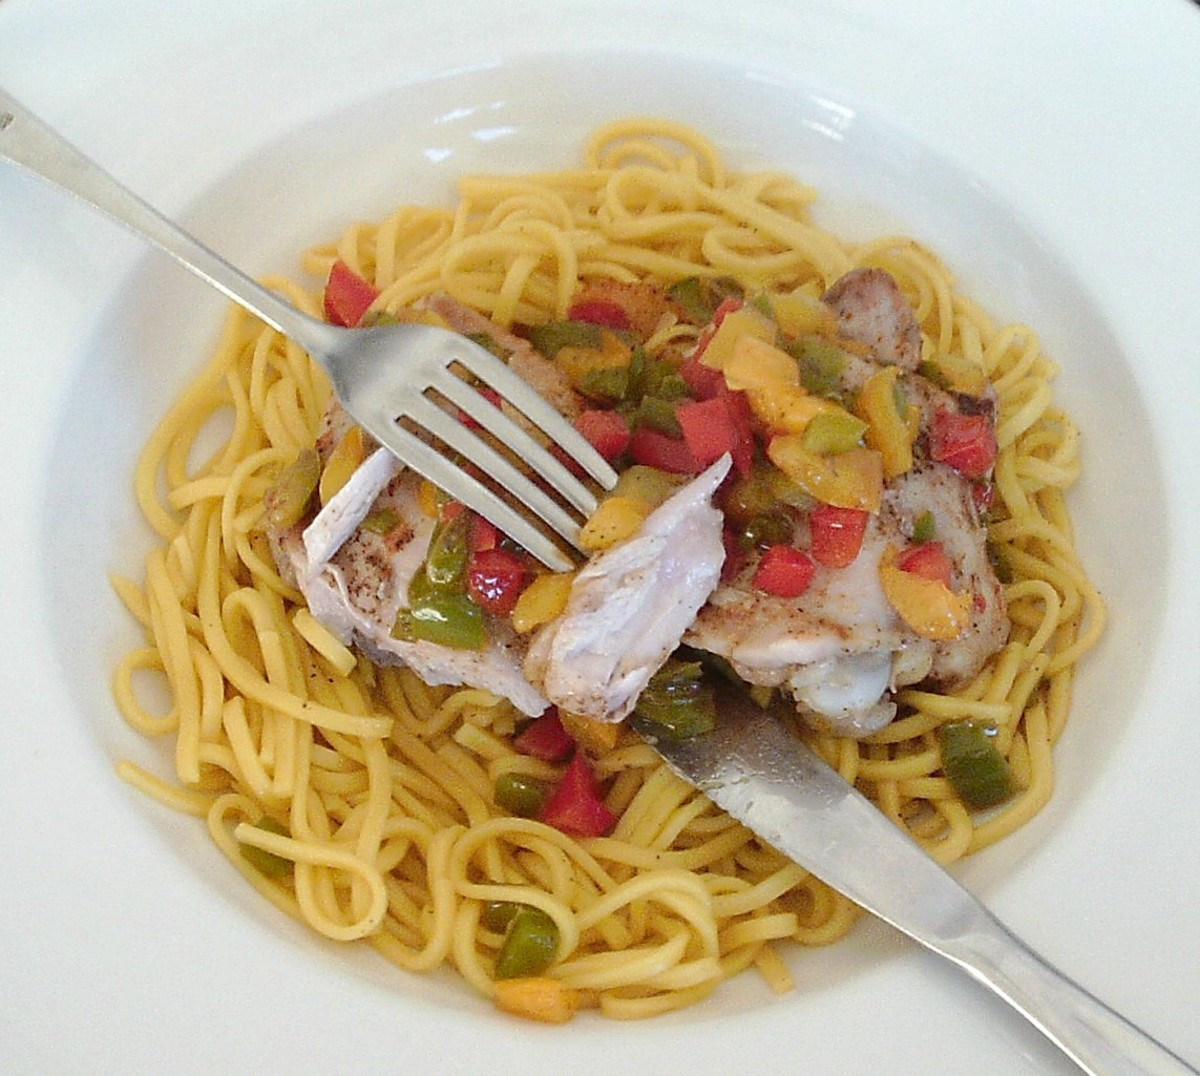 Chicken thighs baked with spices and bell peppers are served on a bed of turmeric spiced egg noodles